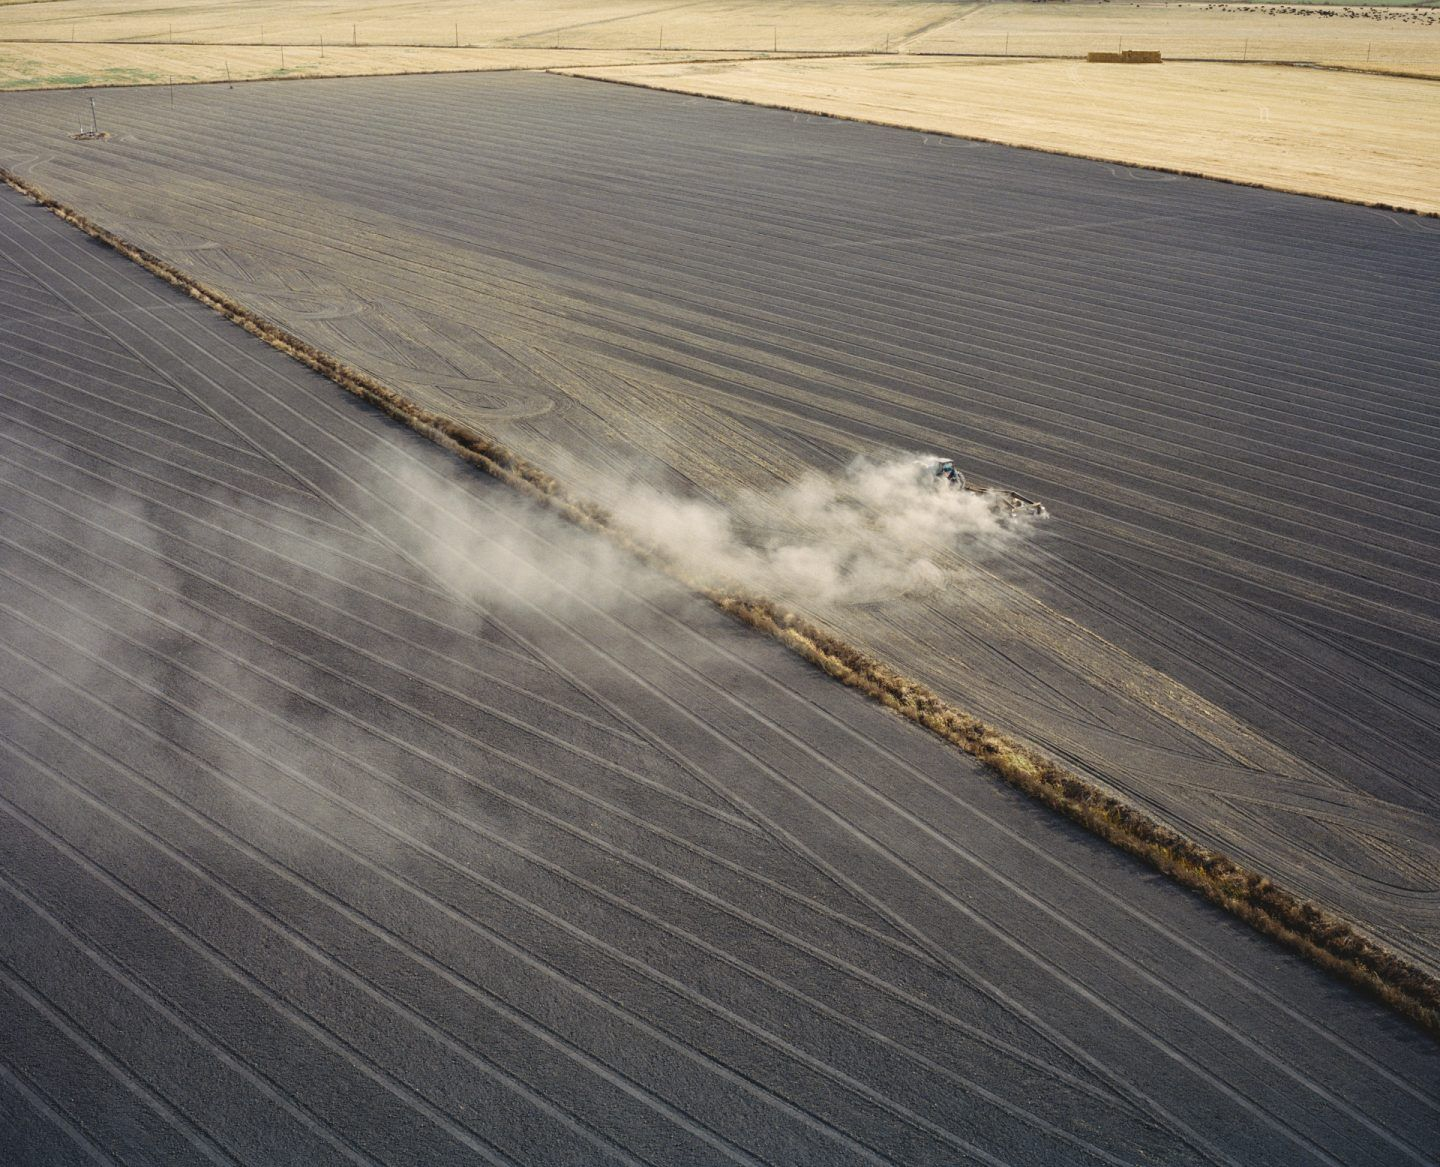 Agriculture fields near San Joaquin River near Antioch, California, USA, 2015.